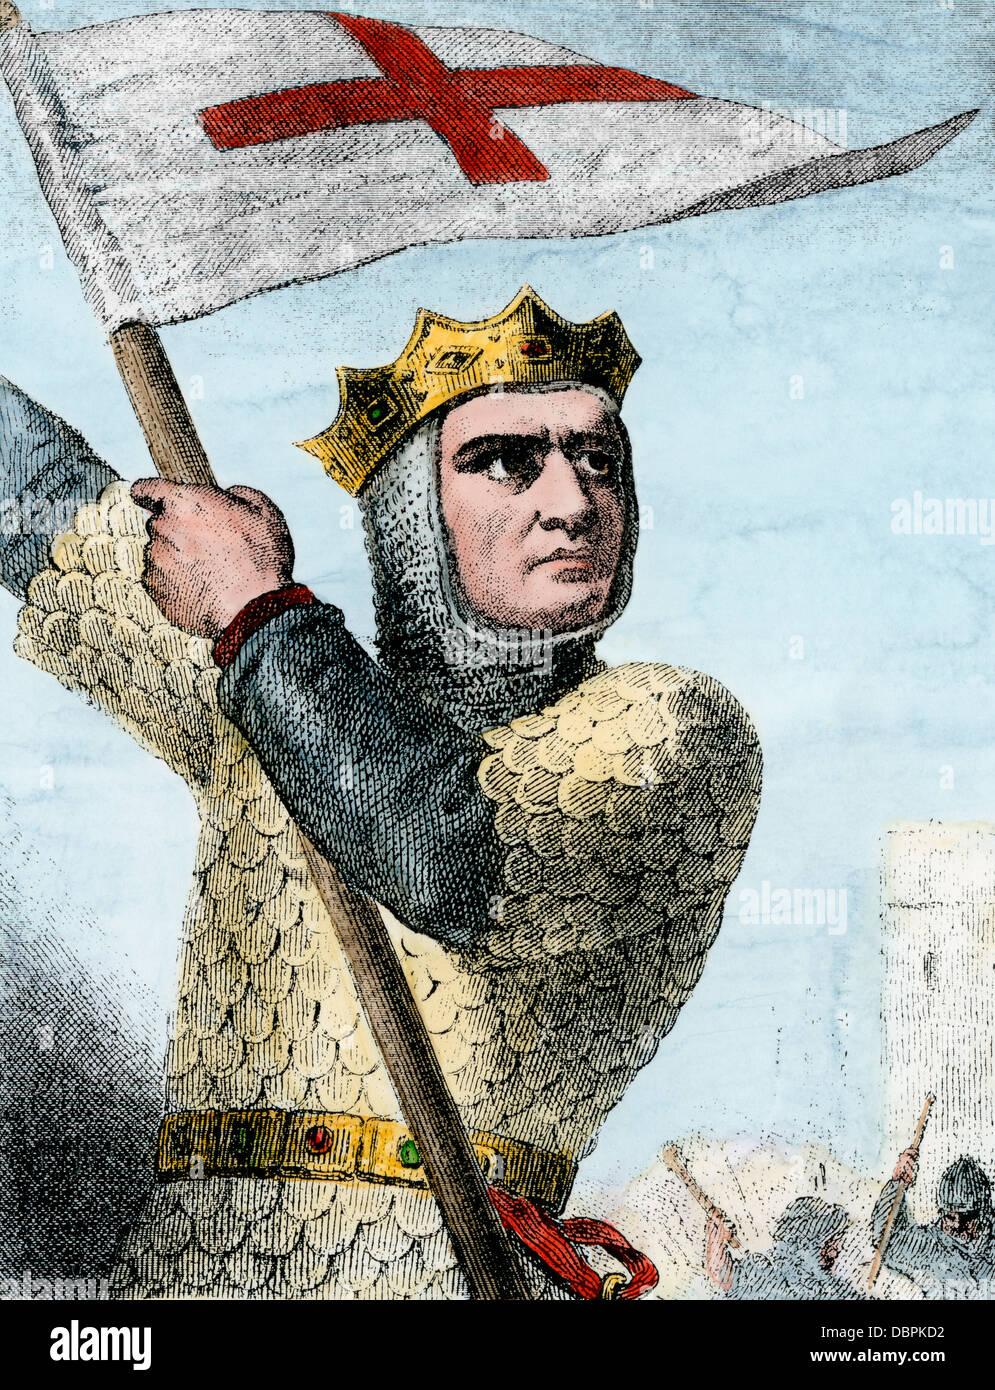 Godfrey of Bouillon in the First Crusade, 1096 A.D. Hand-colored woodcut - Stock Image